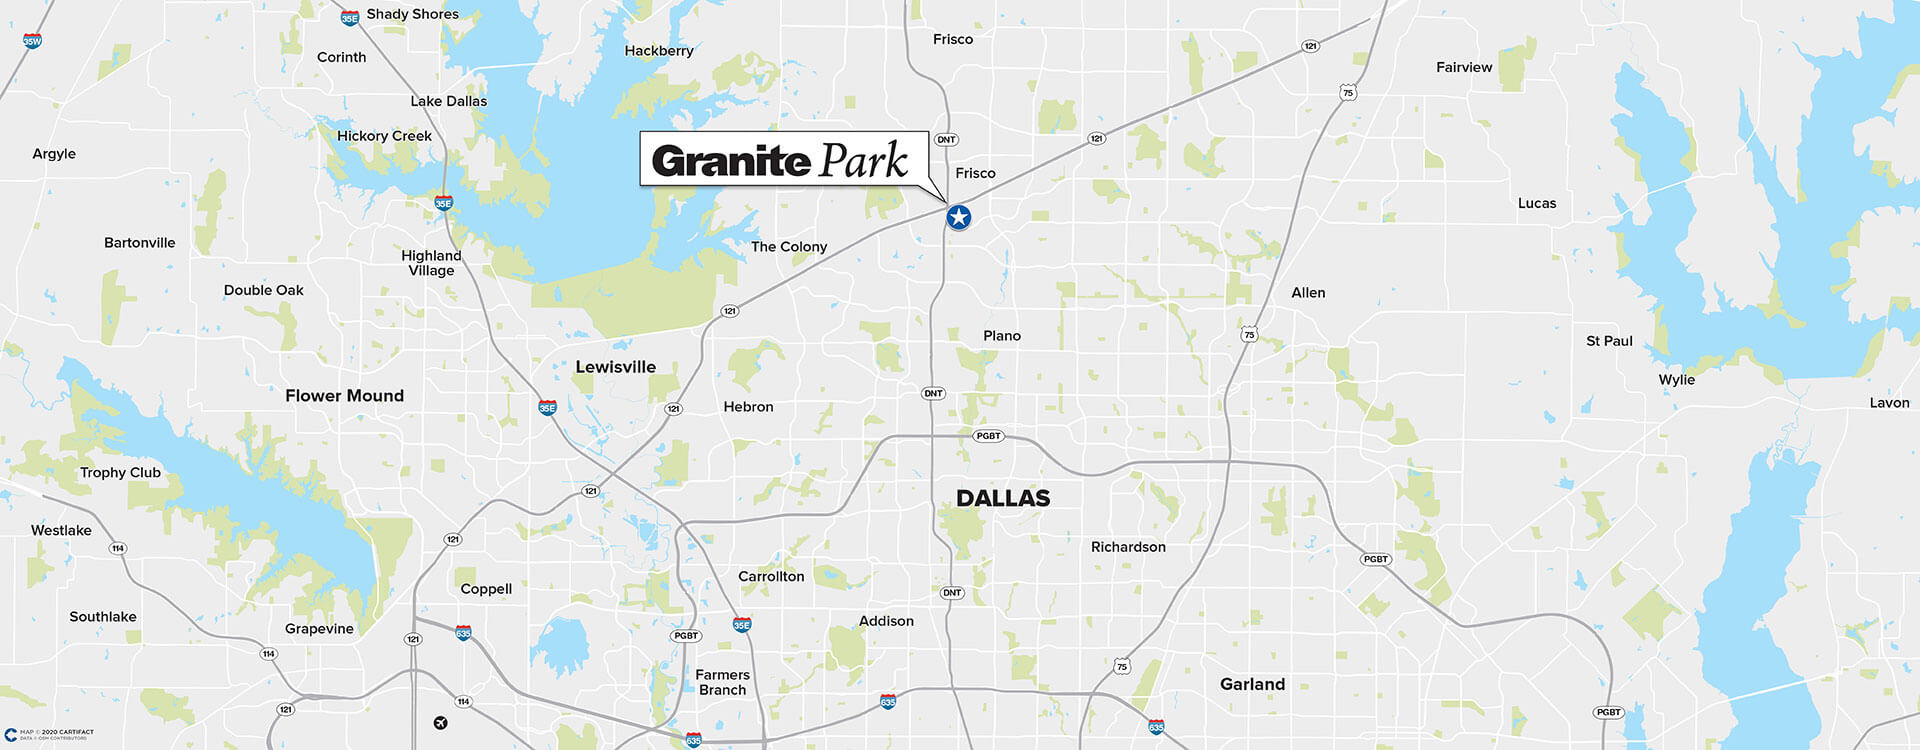 Granite Park Two location map